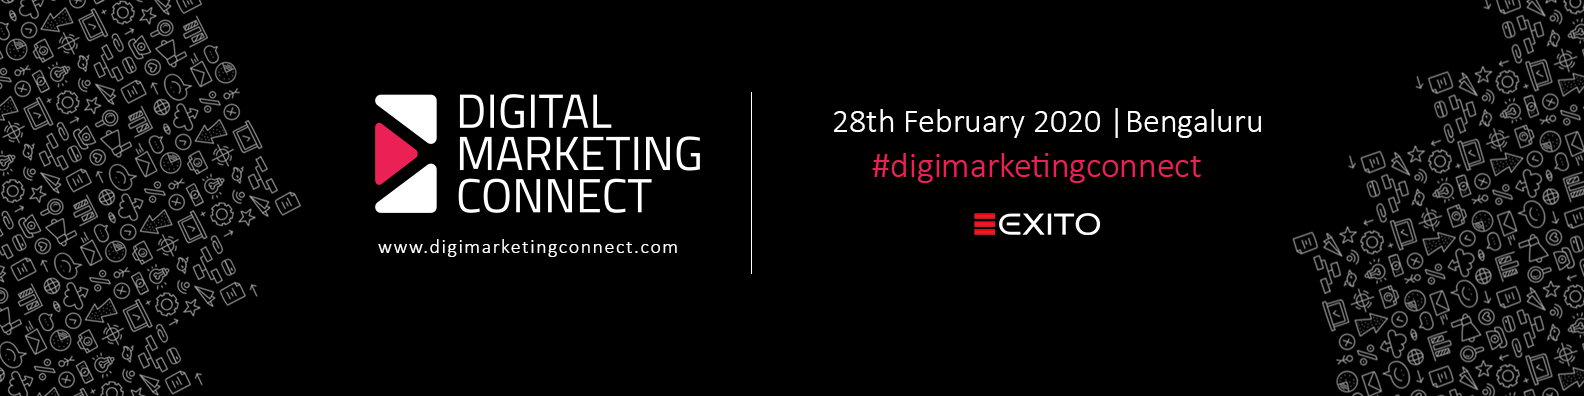 Digital Marketing Connect 2020 Bengaluru